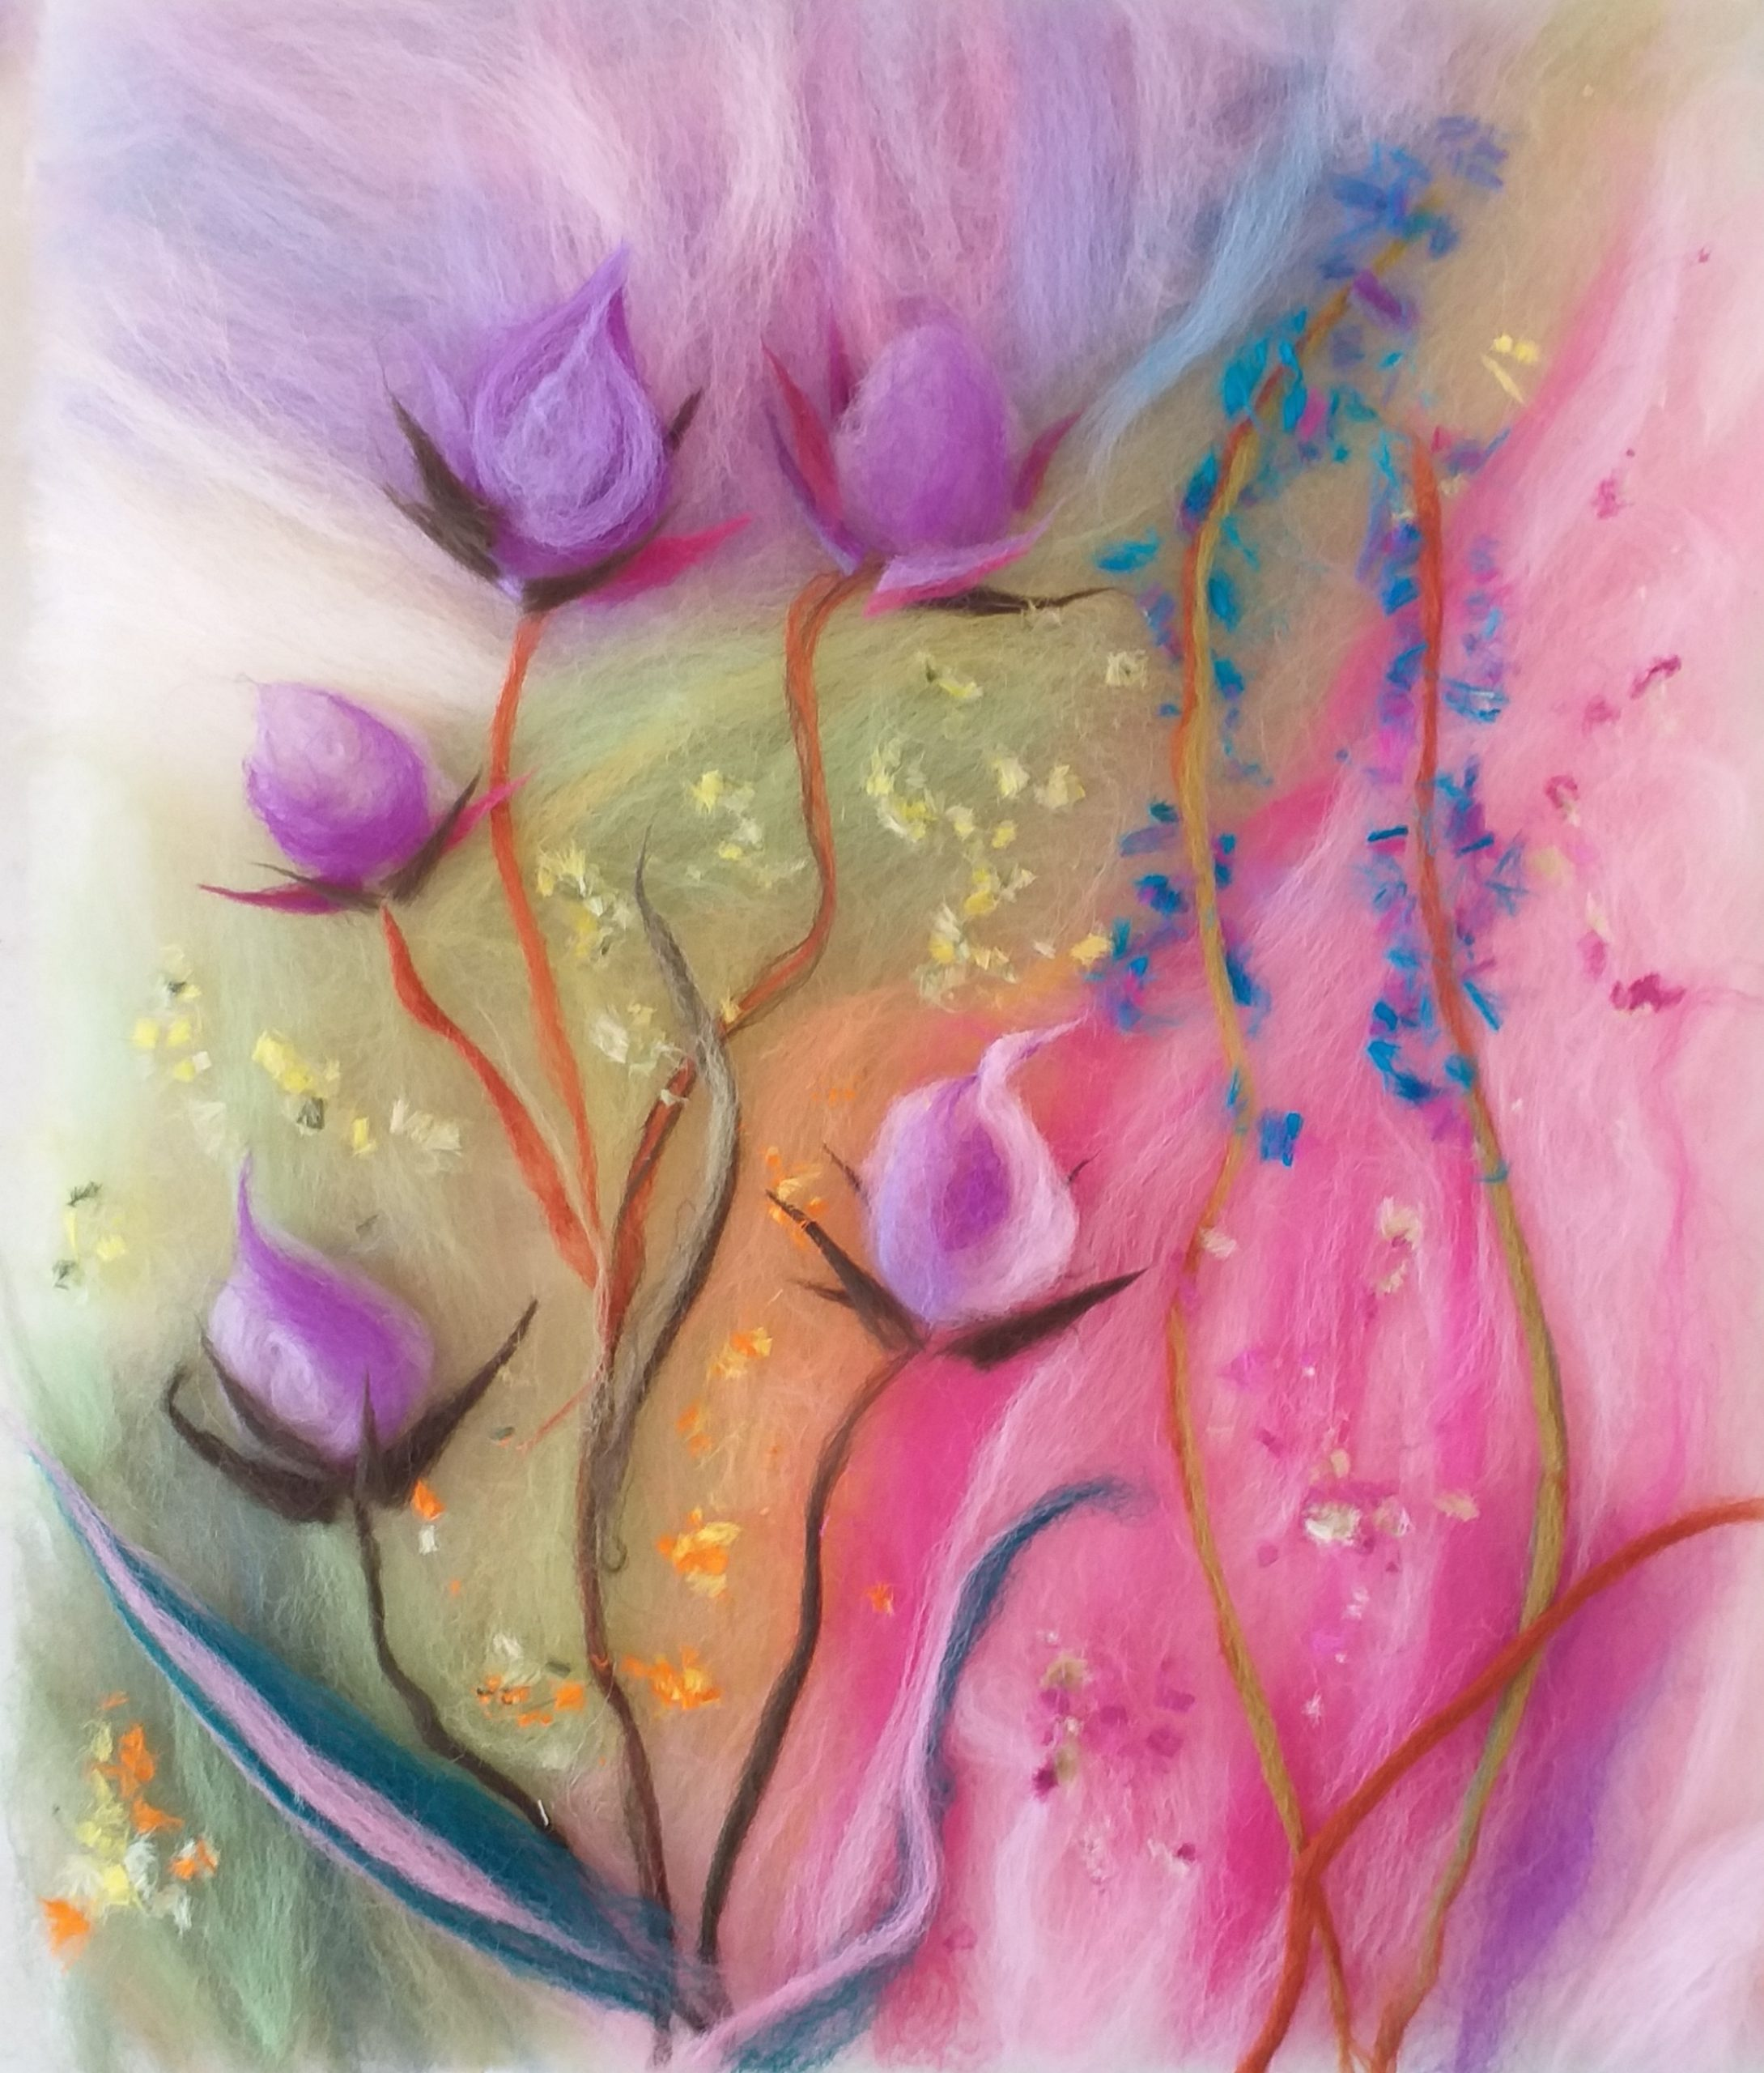 Wool Painting and Felting Textiles Courses at Magic Wool Art and Craft Studio in Kidderminster Worcestershire.